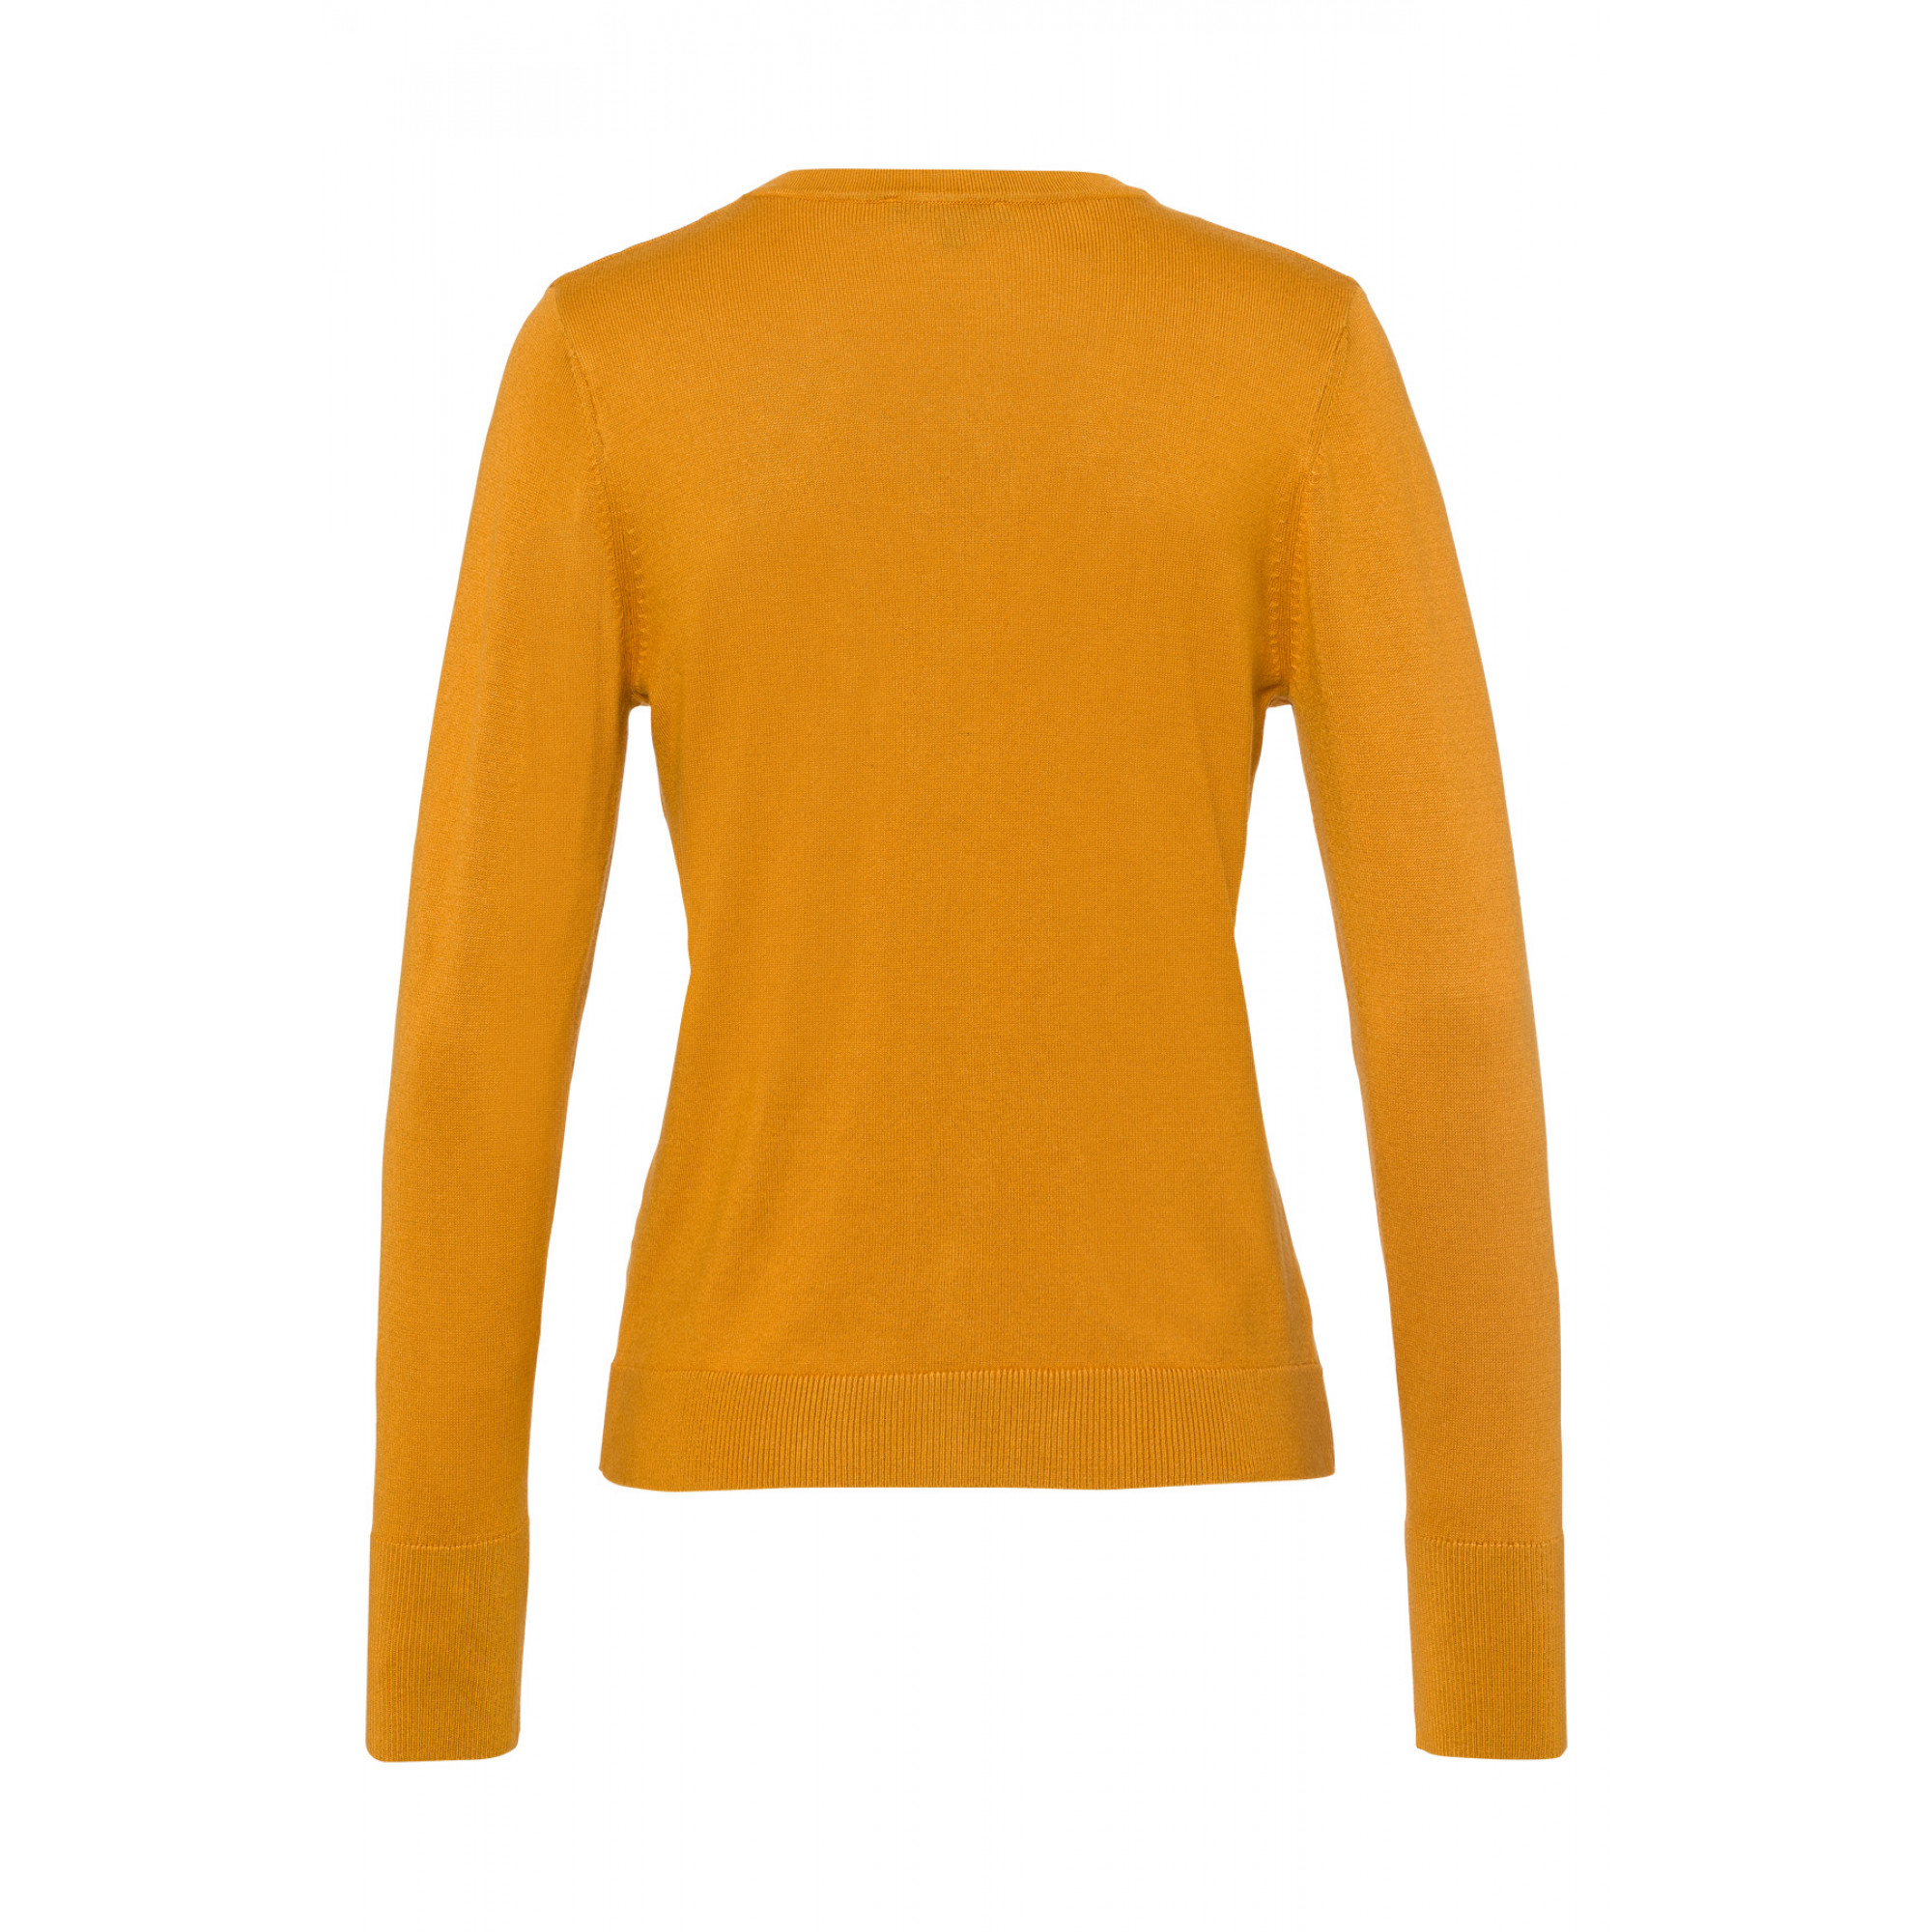 Cardigan, autumn yellow 91911512-0185 2